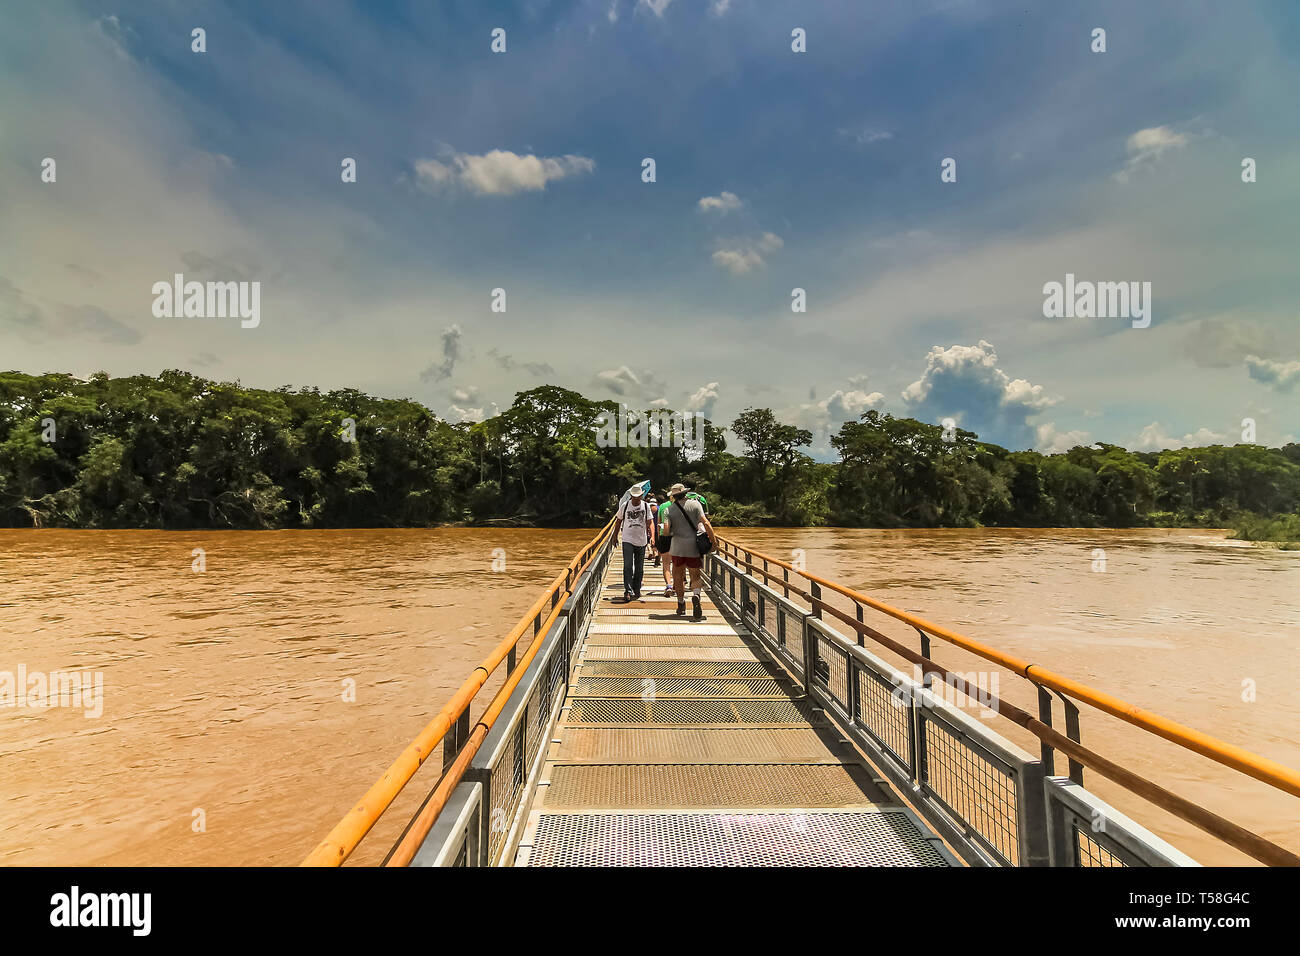 Misiones Province, Argentina - Jan 2015: The metal walkway from Pueto Iguazu towards the waterfalls at Iquazu Falls - Stock Image